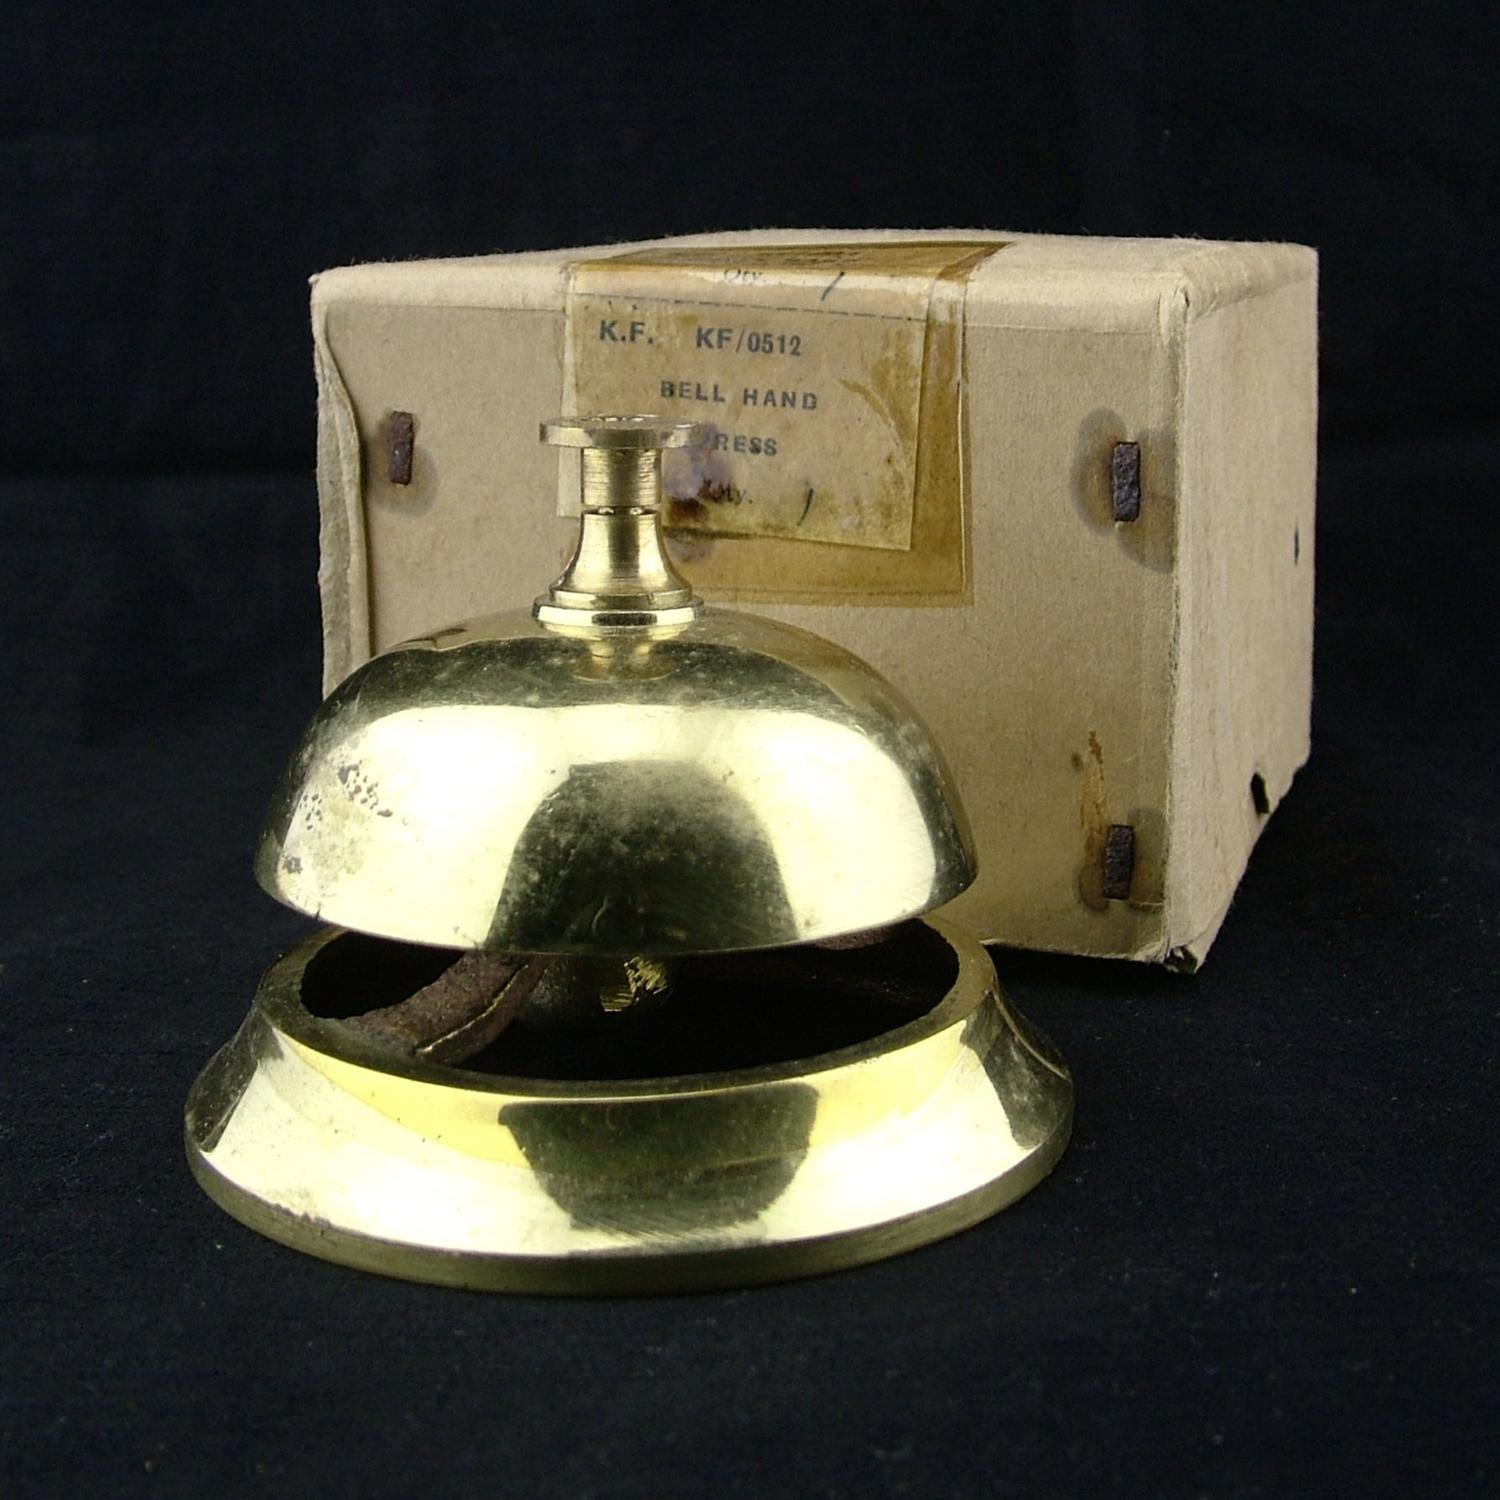 British forces counter bell